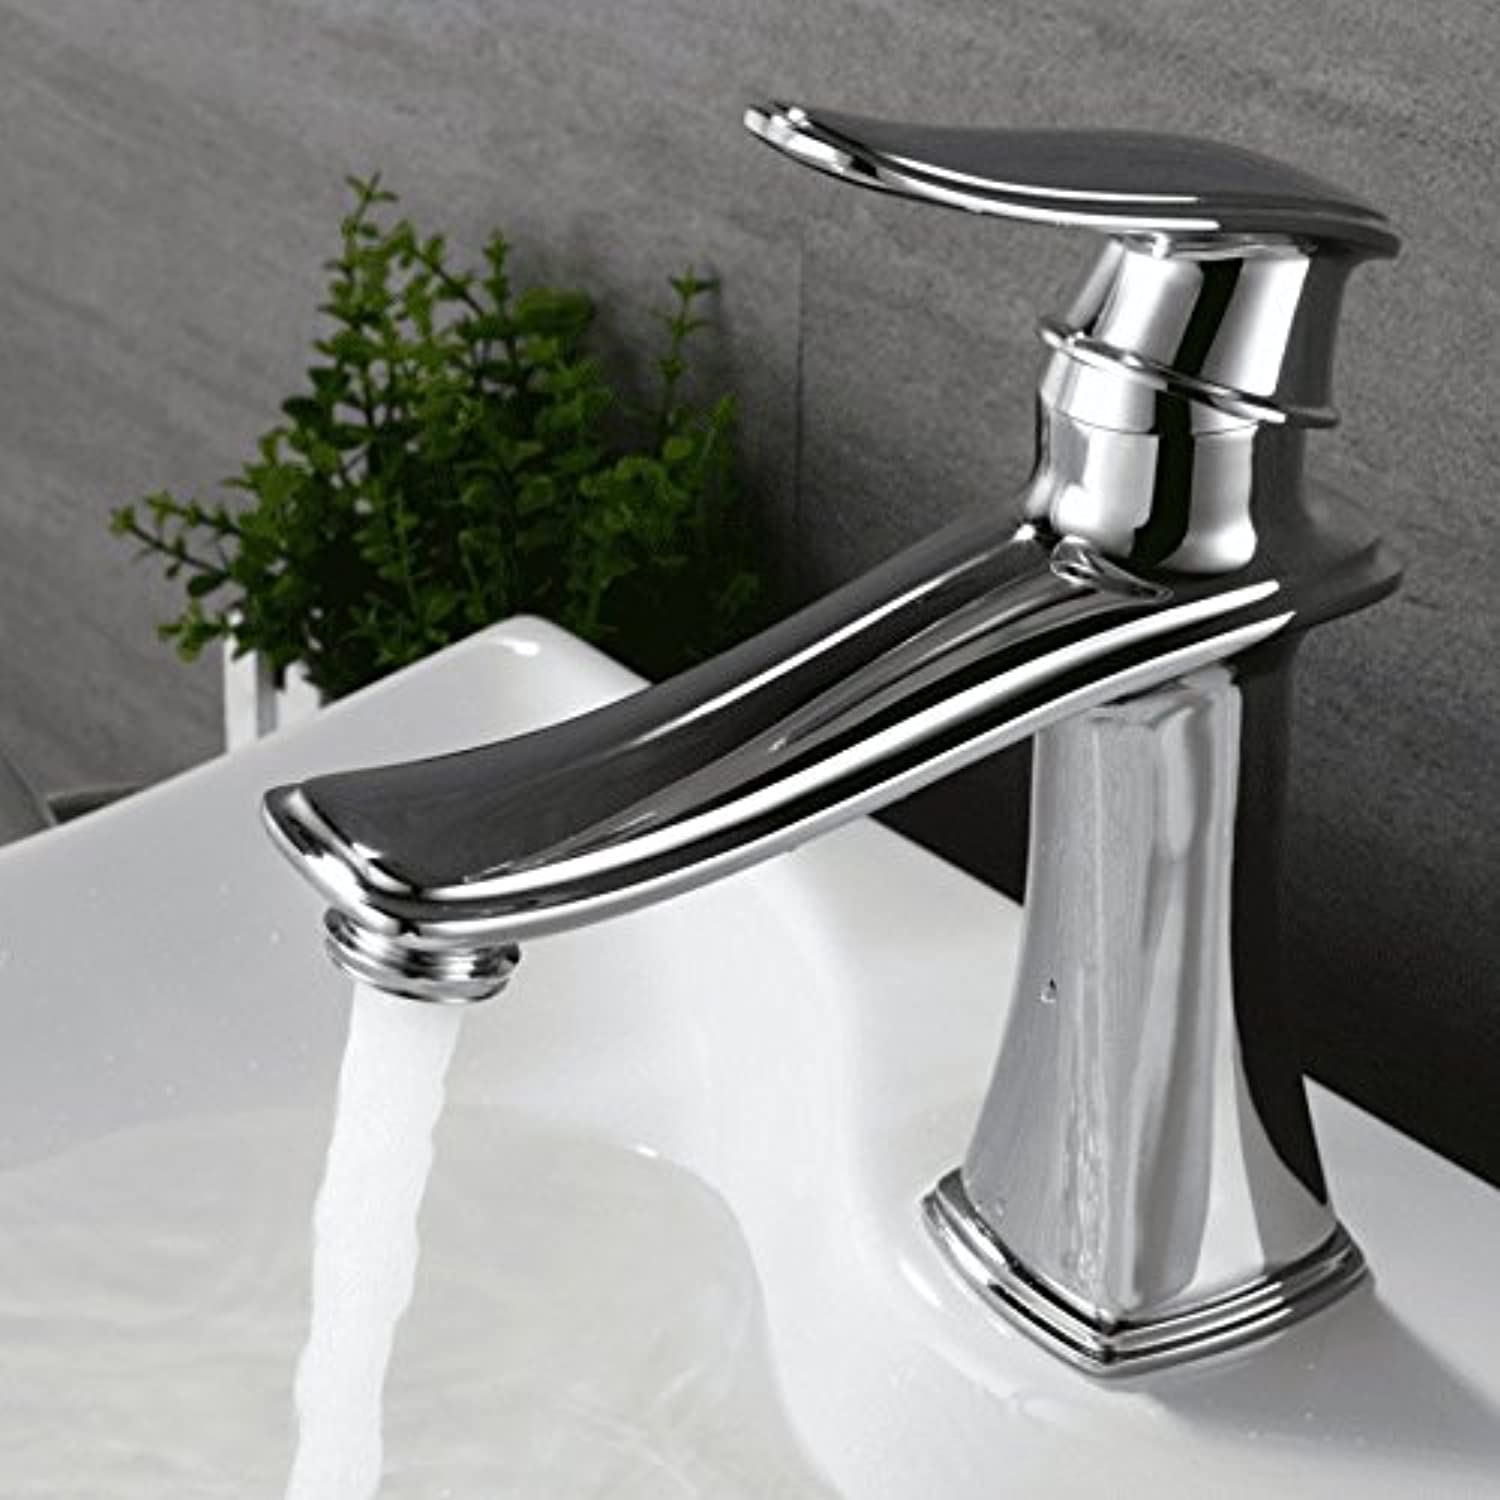 AQMMi Bathroom Sink Mixer Tap Copper 1 Hole Single Lever Hot and Cold Water Silver Taps for Bathroom Sink